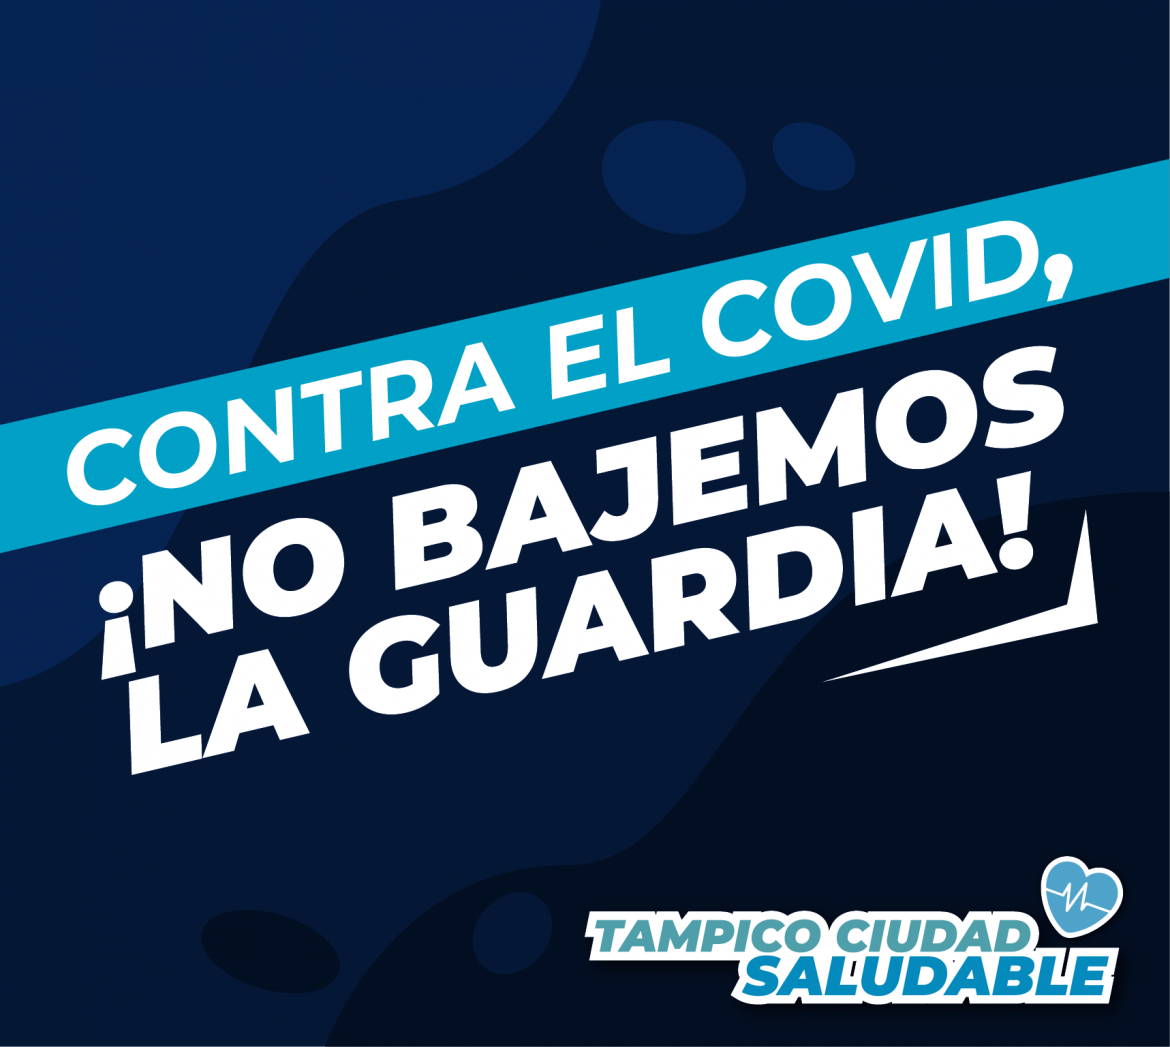 No bajemos la Guardia #TampicoCiudadSaludable